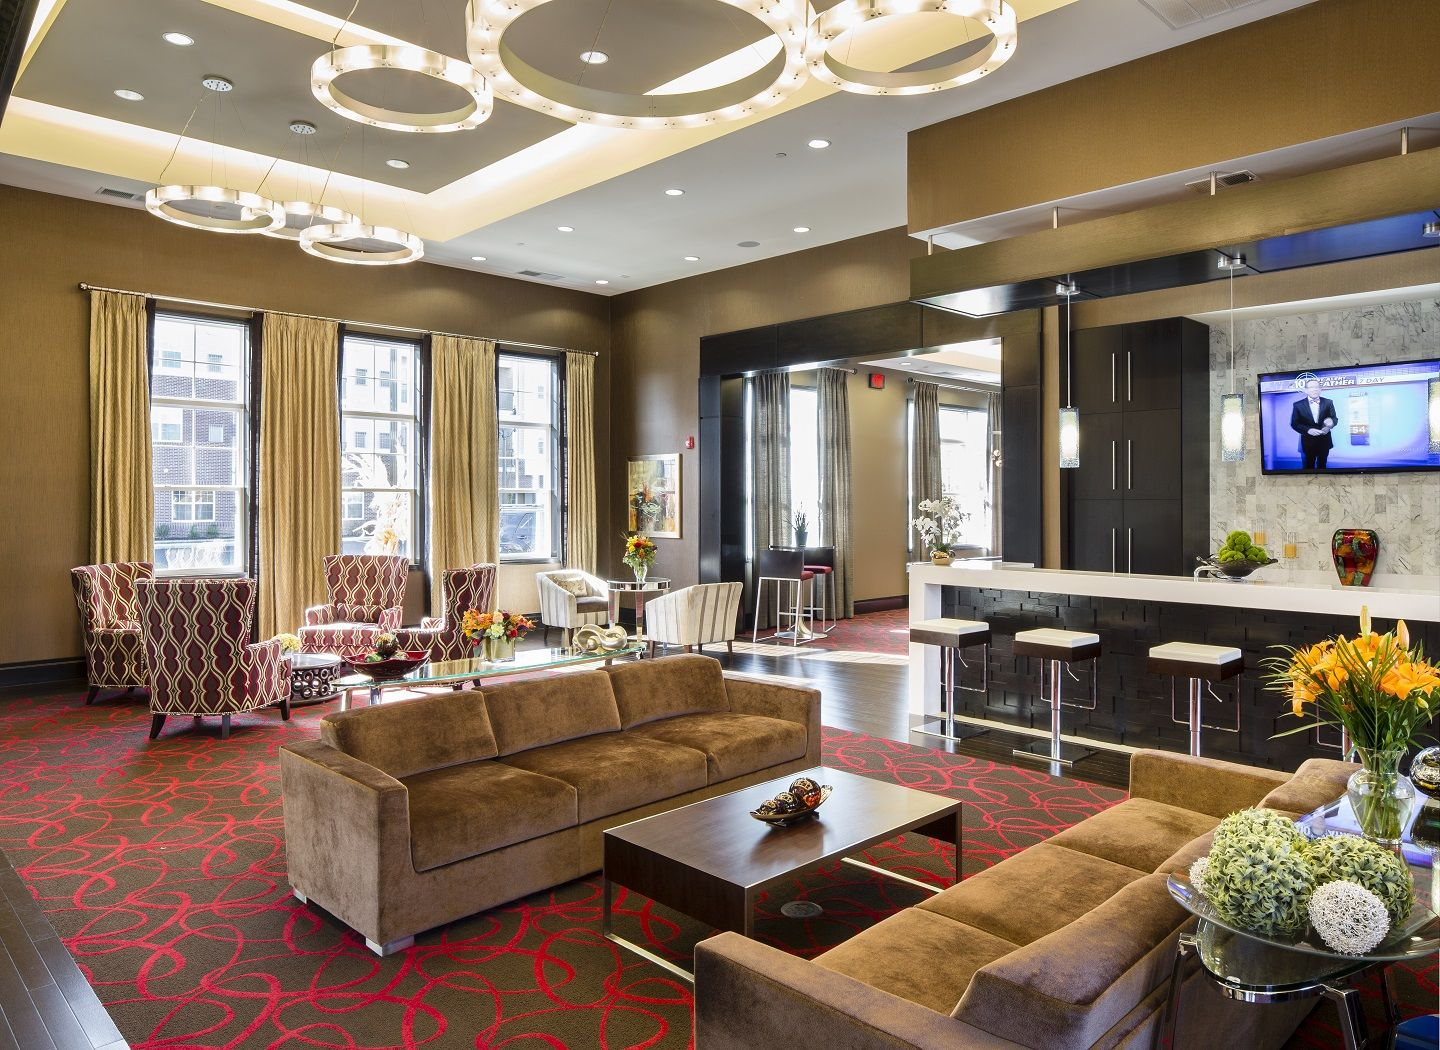 Luxury Apartments Townhomes Condominiums In Cherry Hill Nj Luxury Apartments Luxury Townhomes Lounge Areas